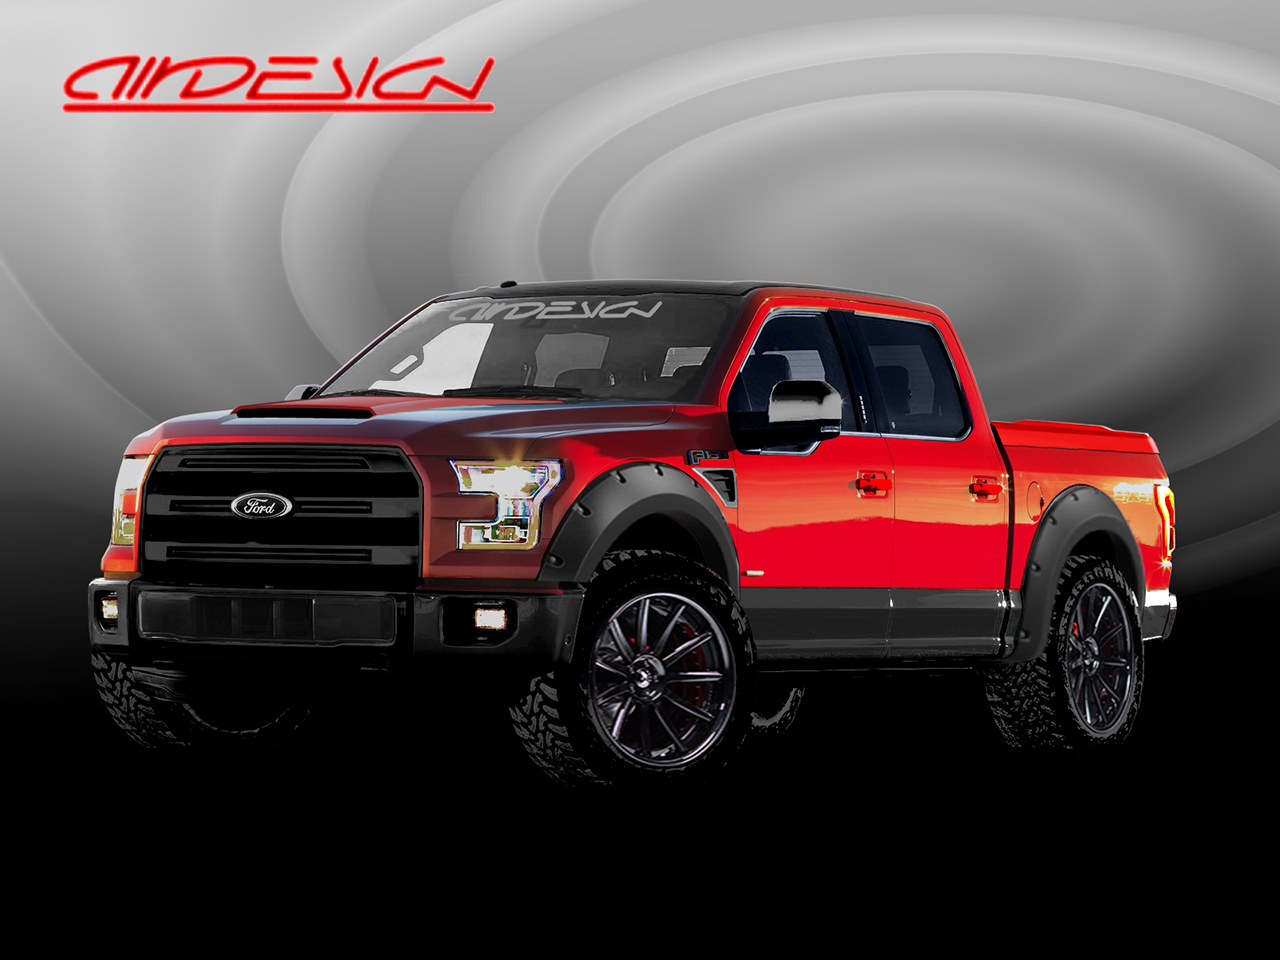 AIRDESIGN USA Ford F-150 Supercrew